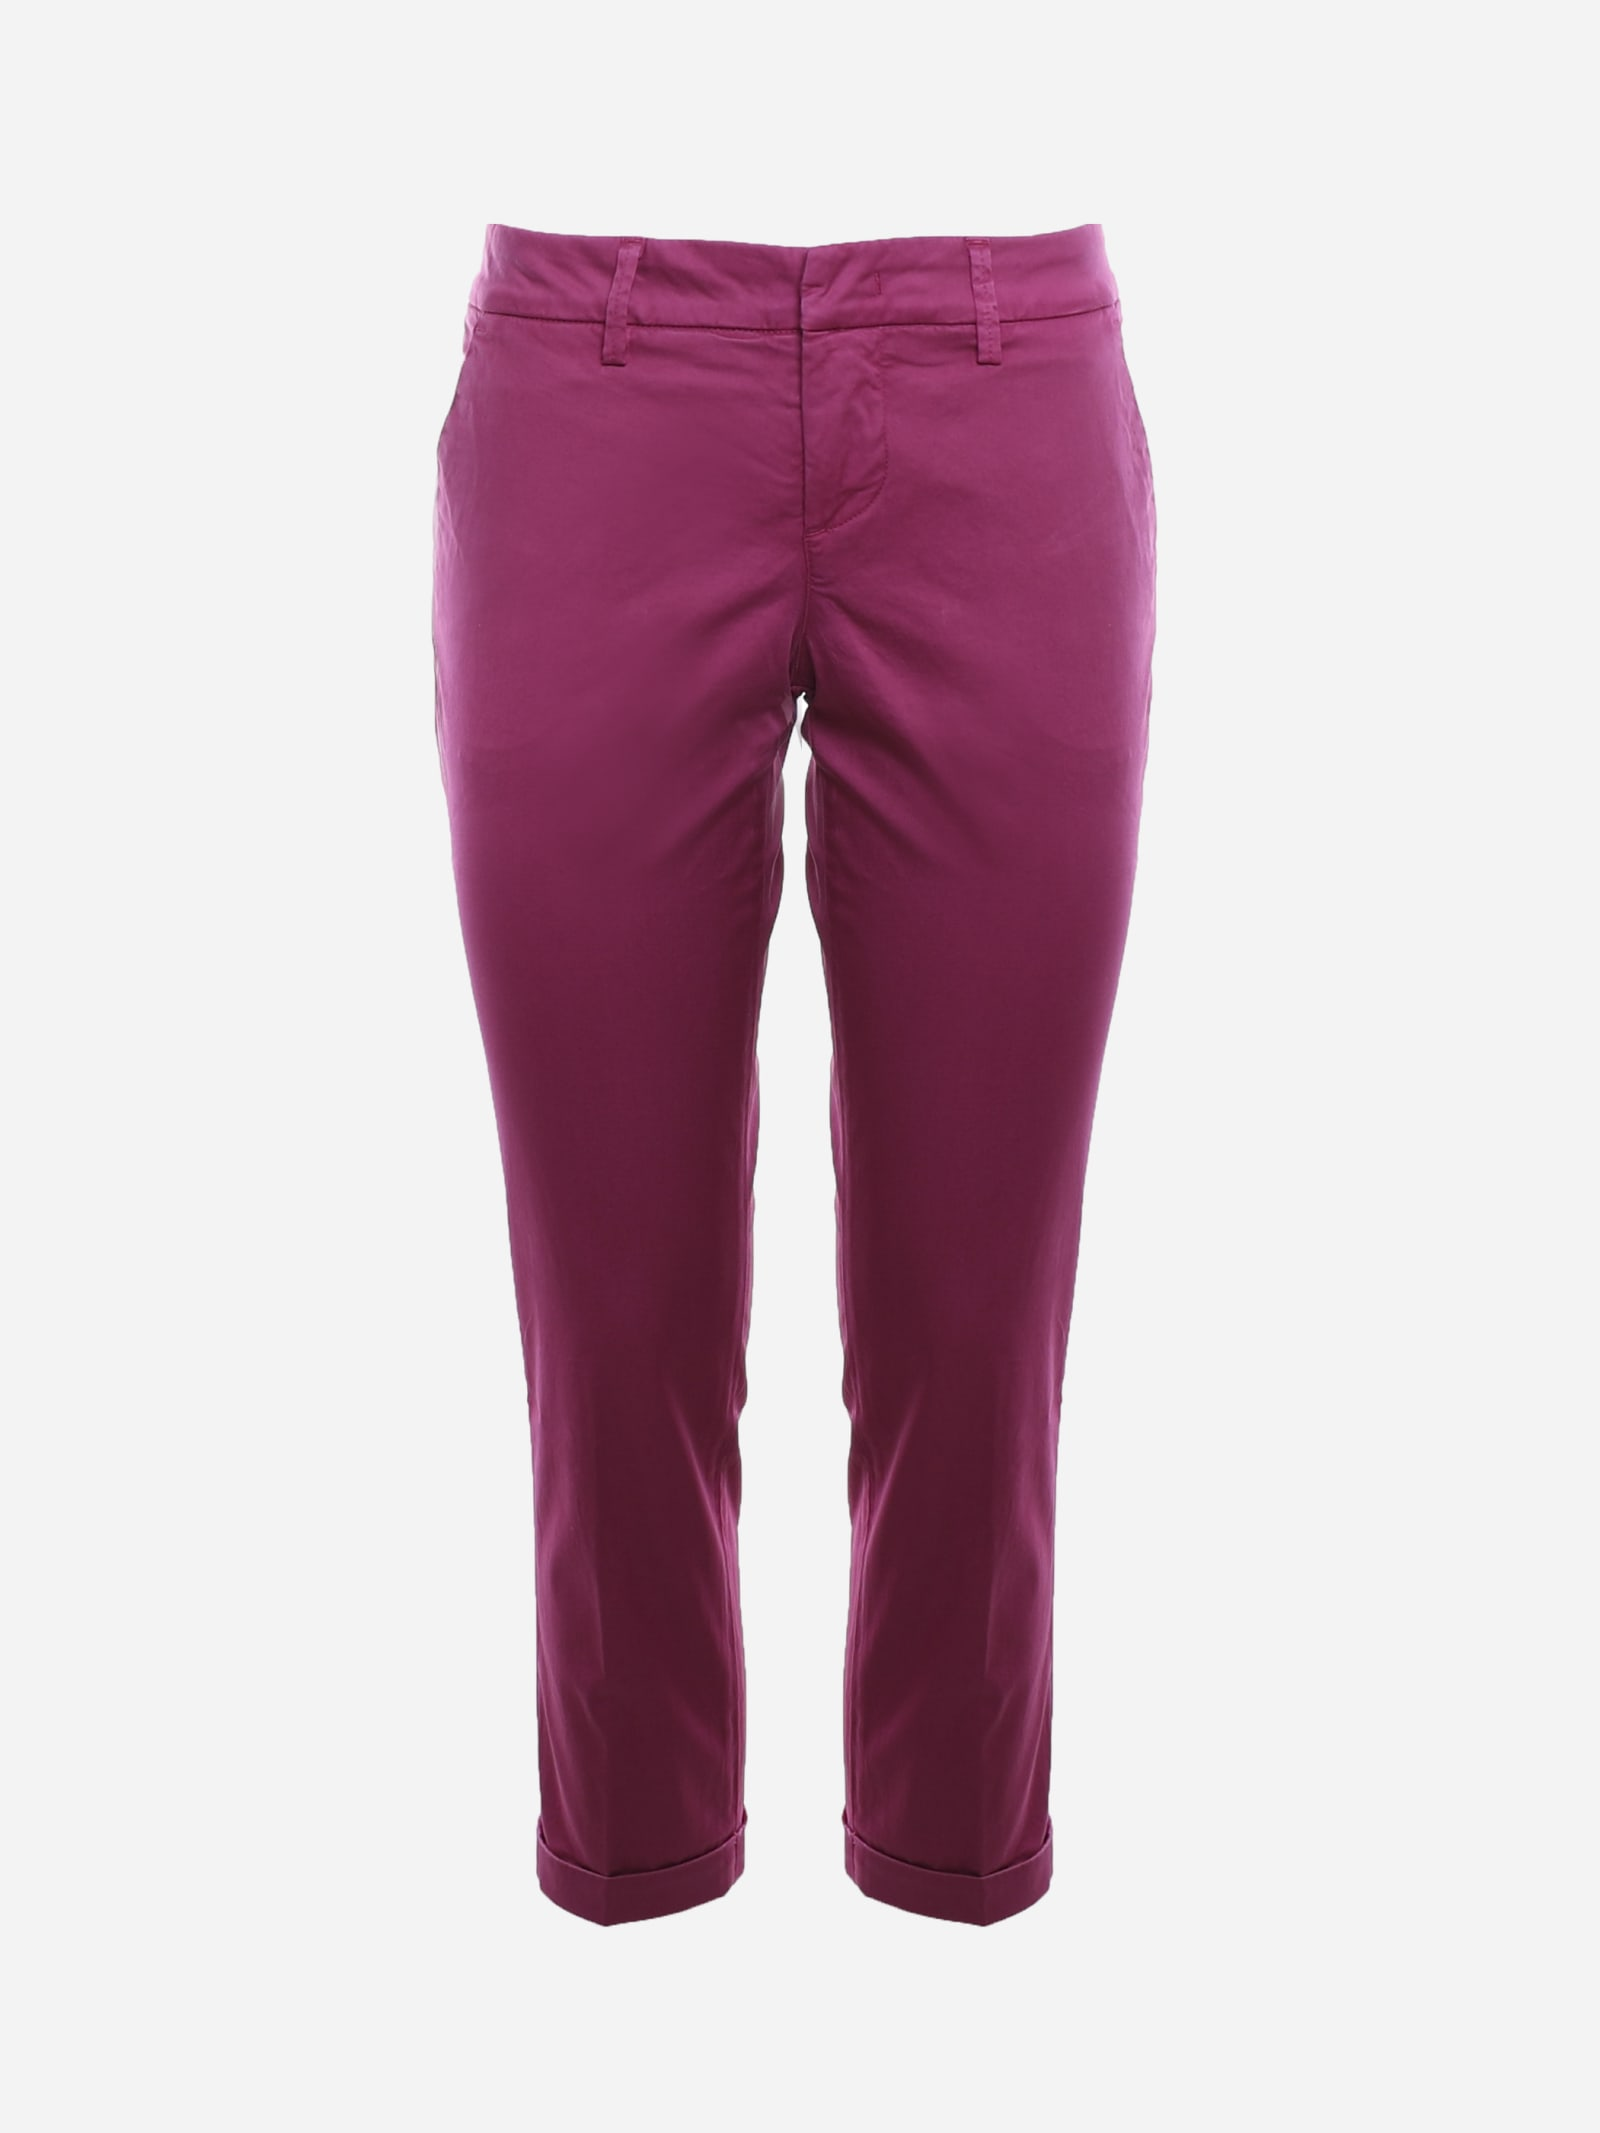 Fay Chino Trousers In Stretch Cotton In Fuxia